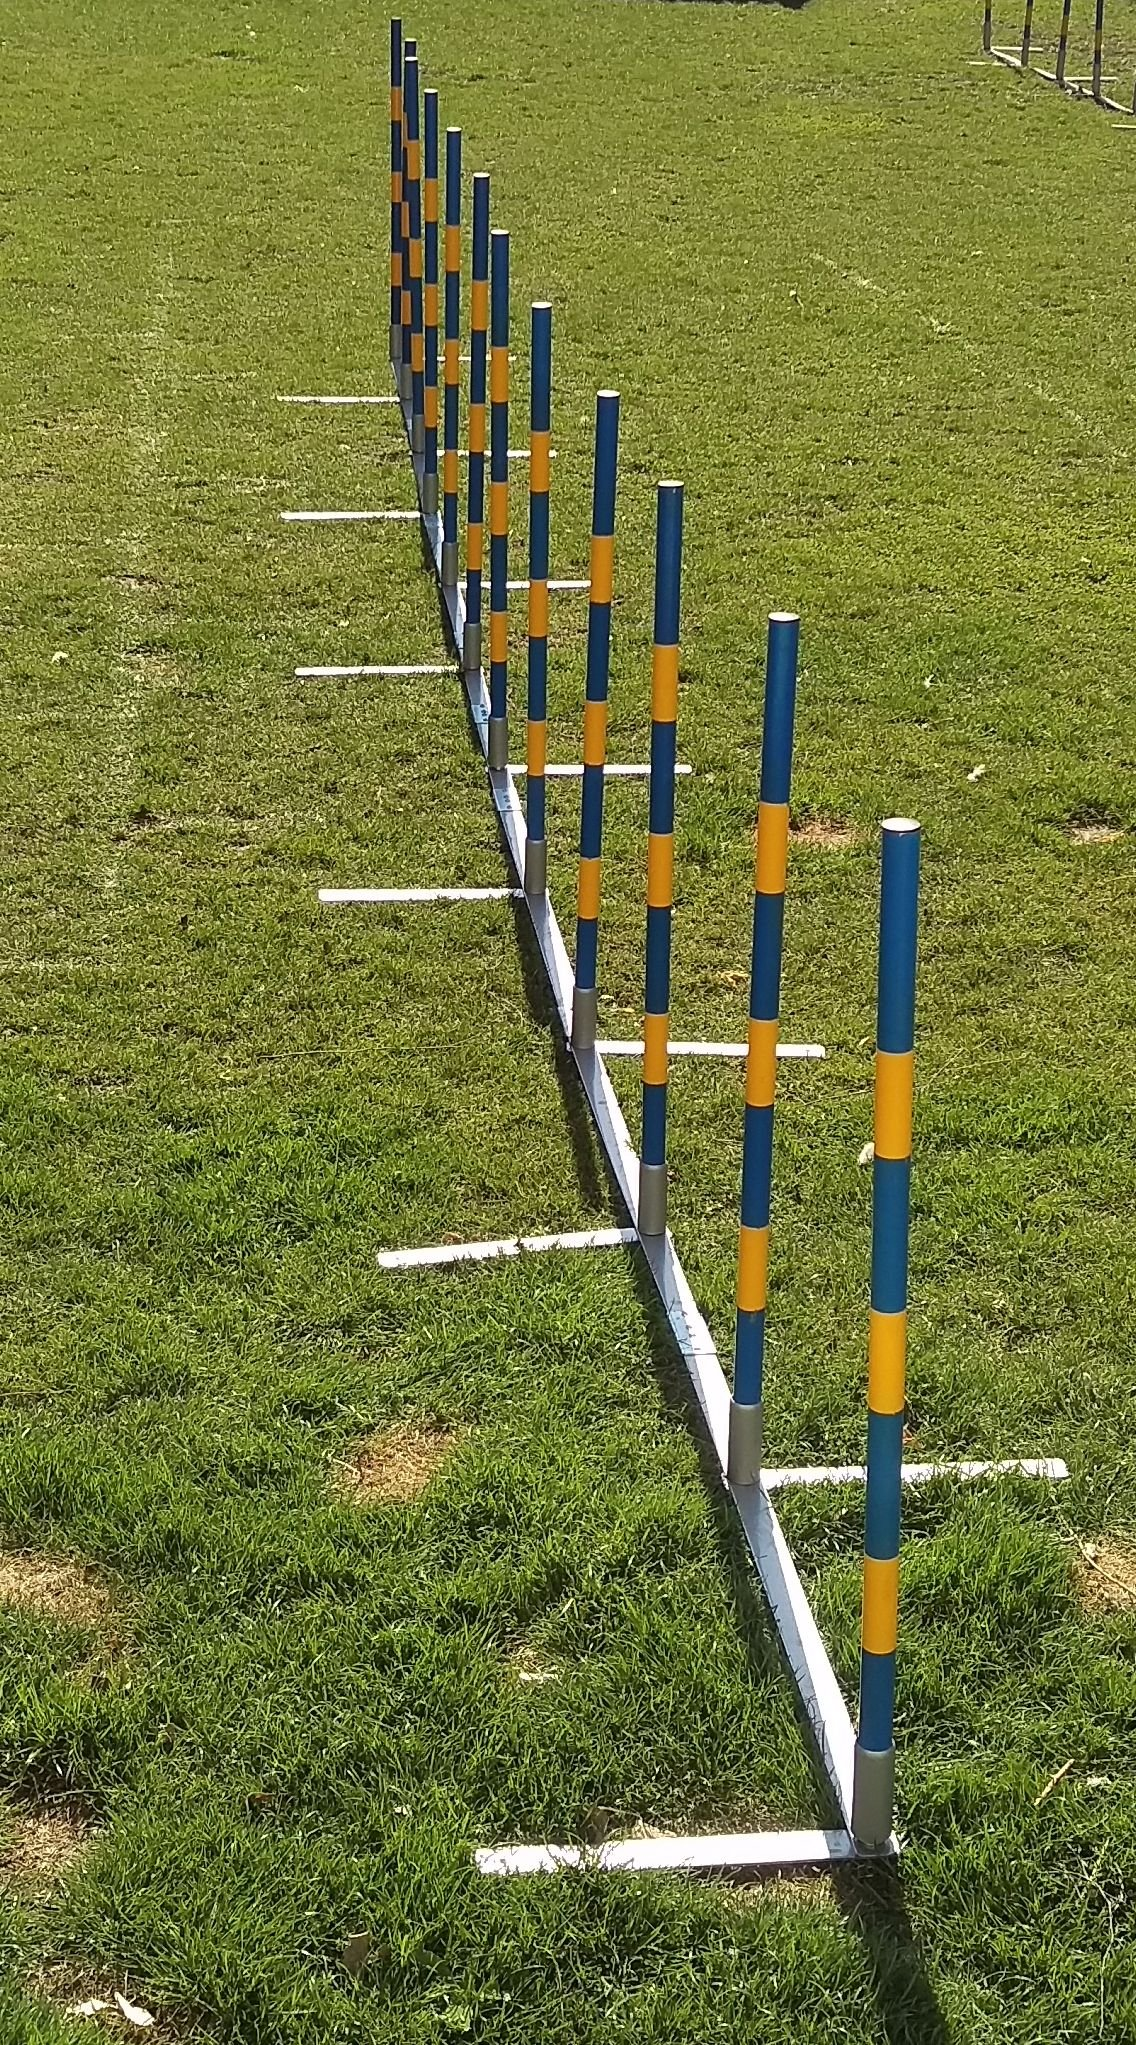 Introductory offer: dog agility weave poles 12X60cm straight weaves for training and kennel club competition